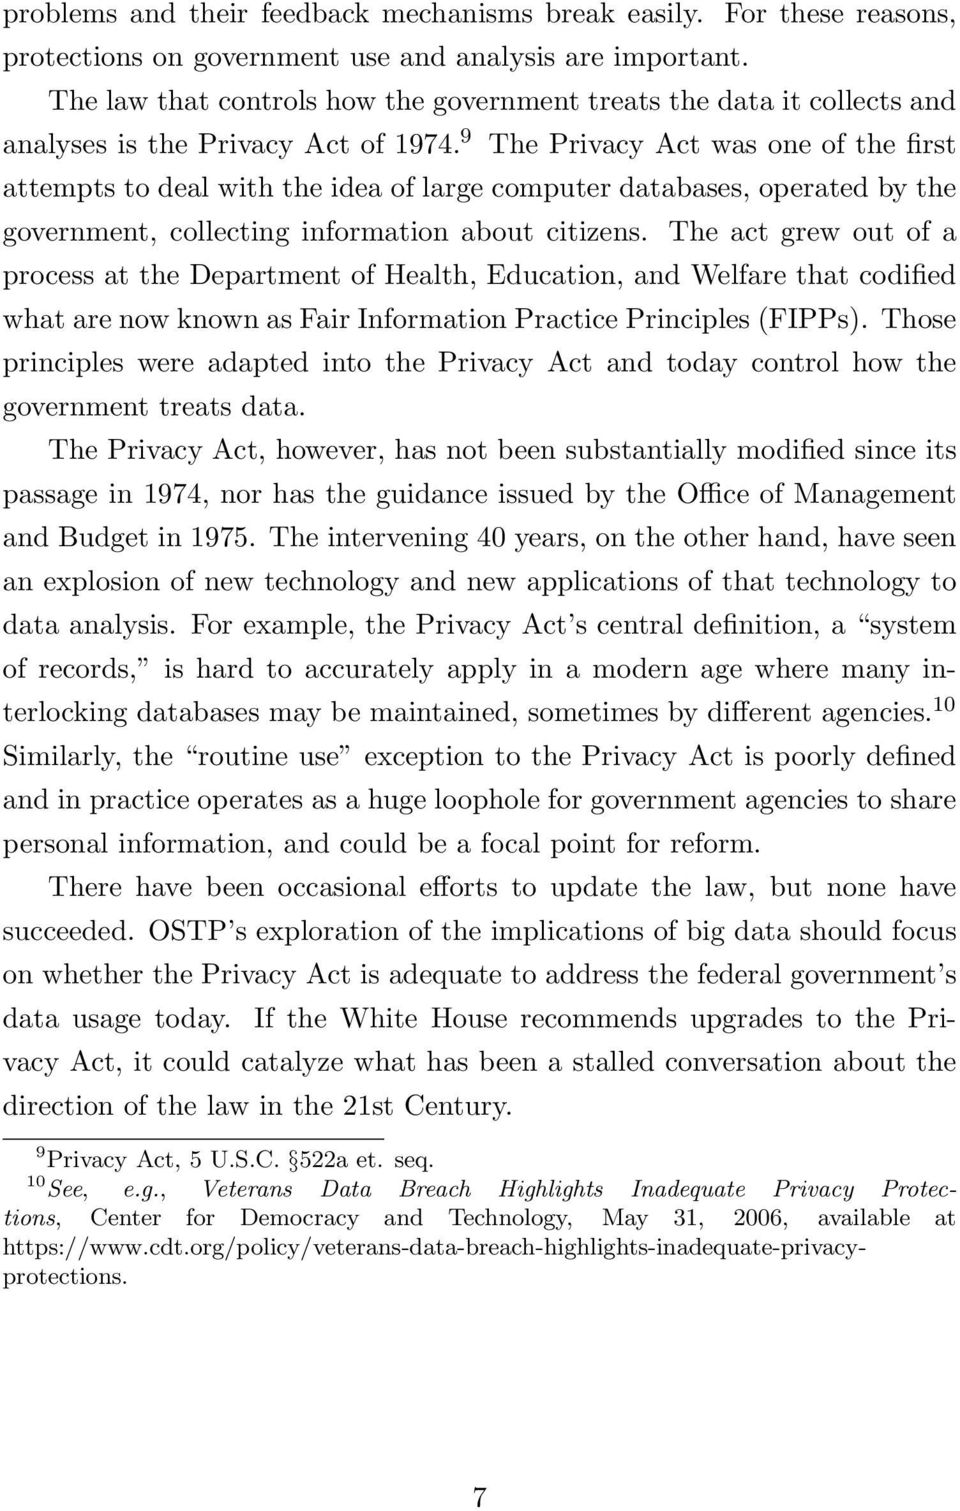 9 The Privacy Act was one of the first attempts to deal with the idea of large computer databases, operated by the government, collecting information about citizens.